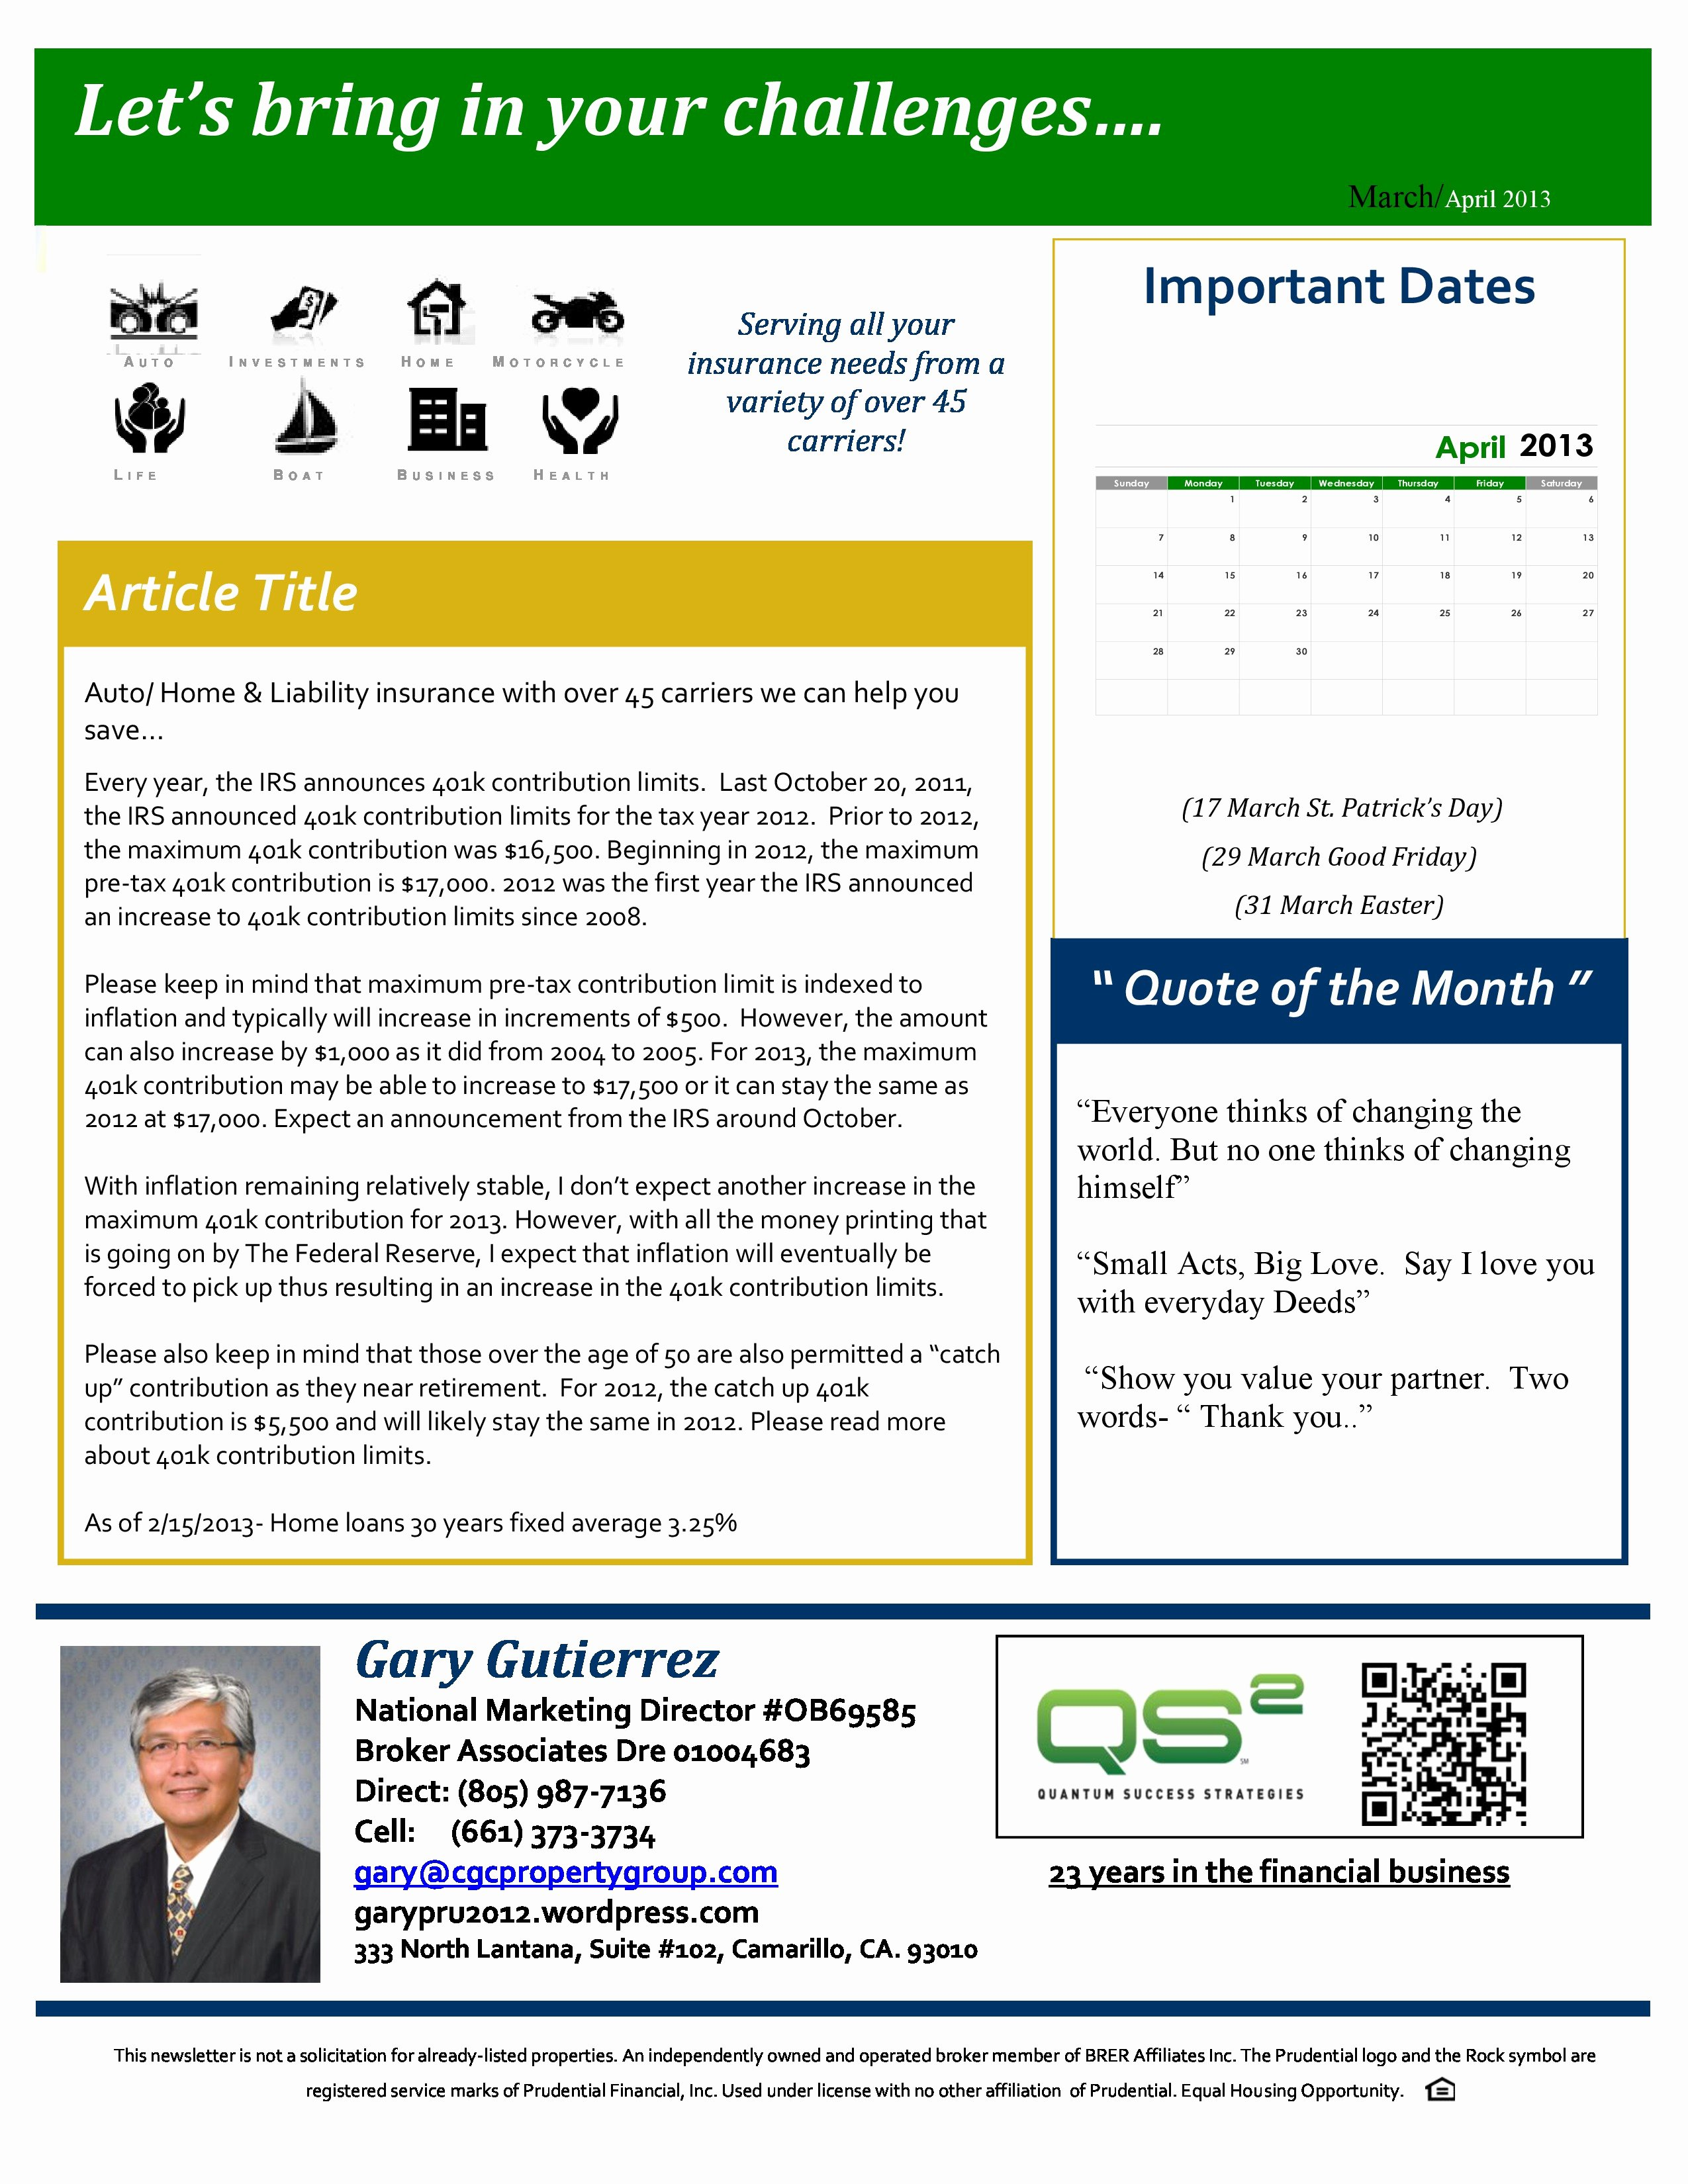 One Page Newsletter Template Luxury Gary Gutierrez Prudential Real Estate